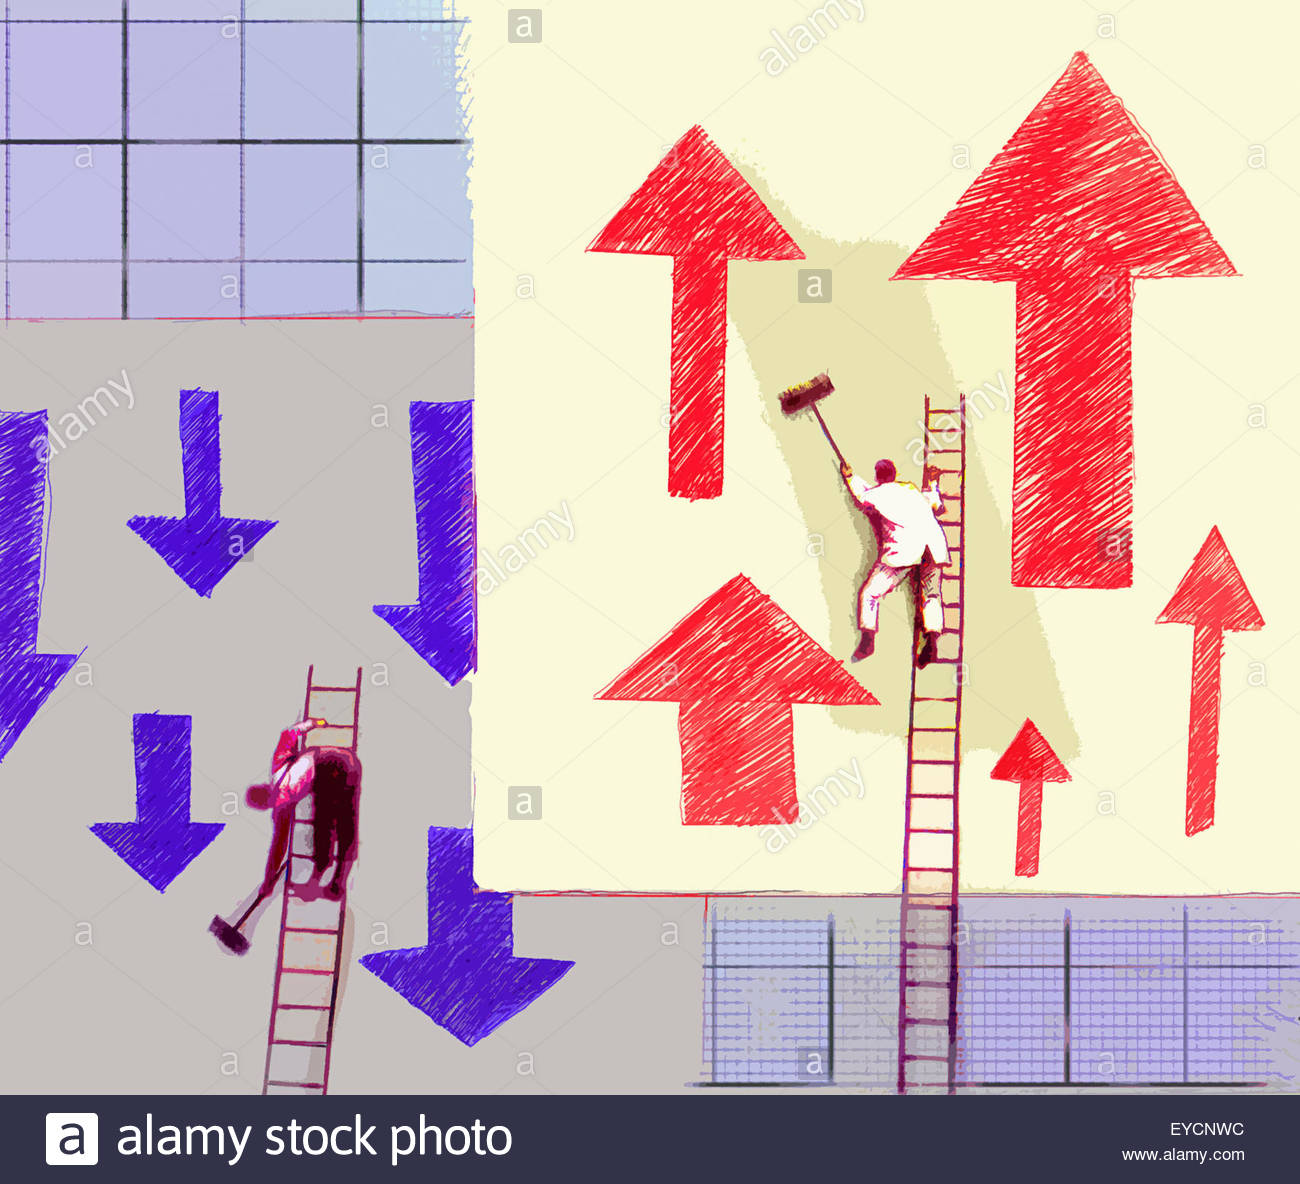 Workmen pasting billboard posters with arrows going in opposite directions - Stock Image